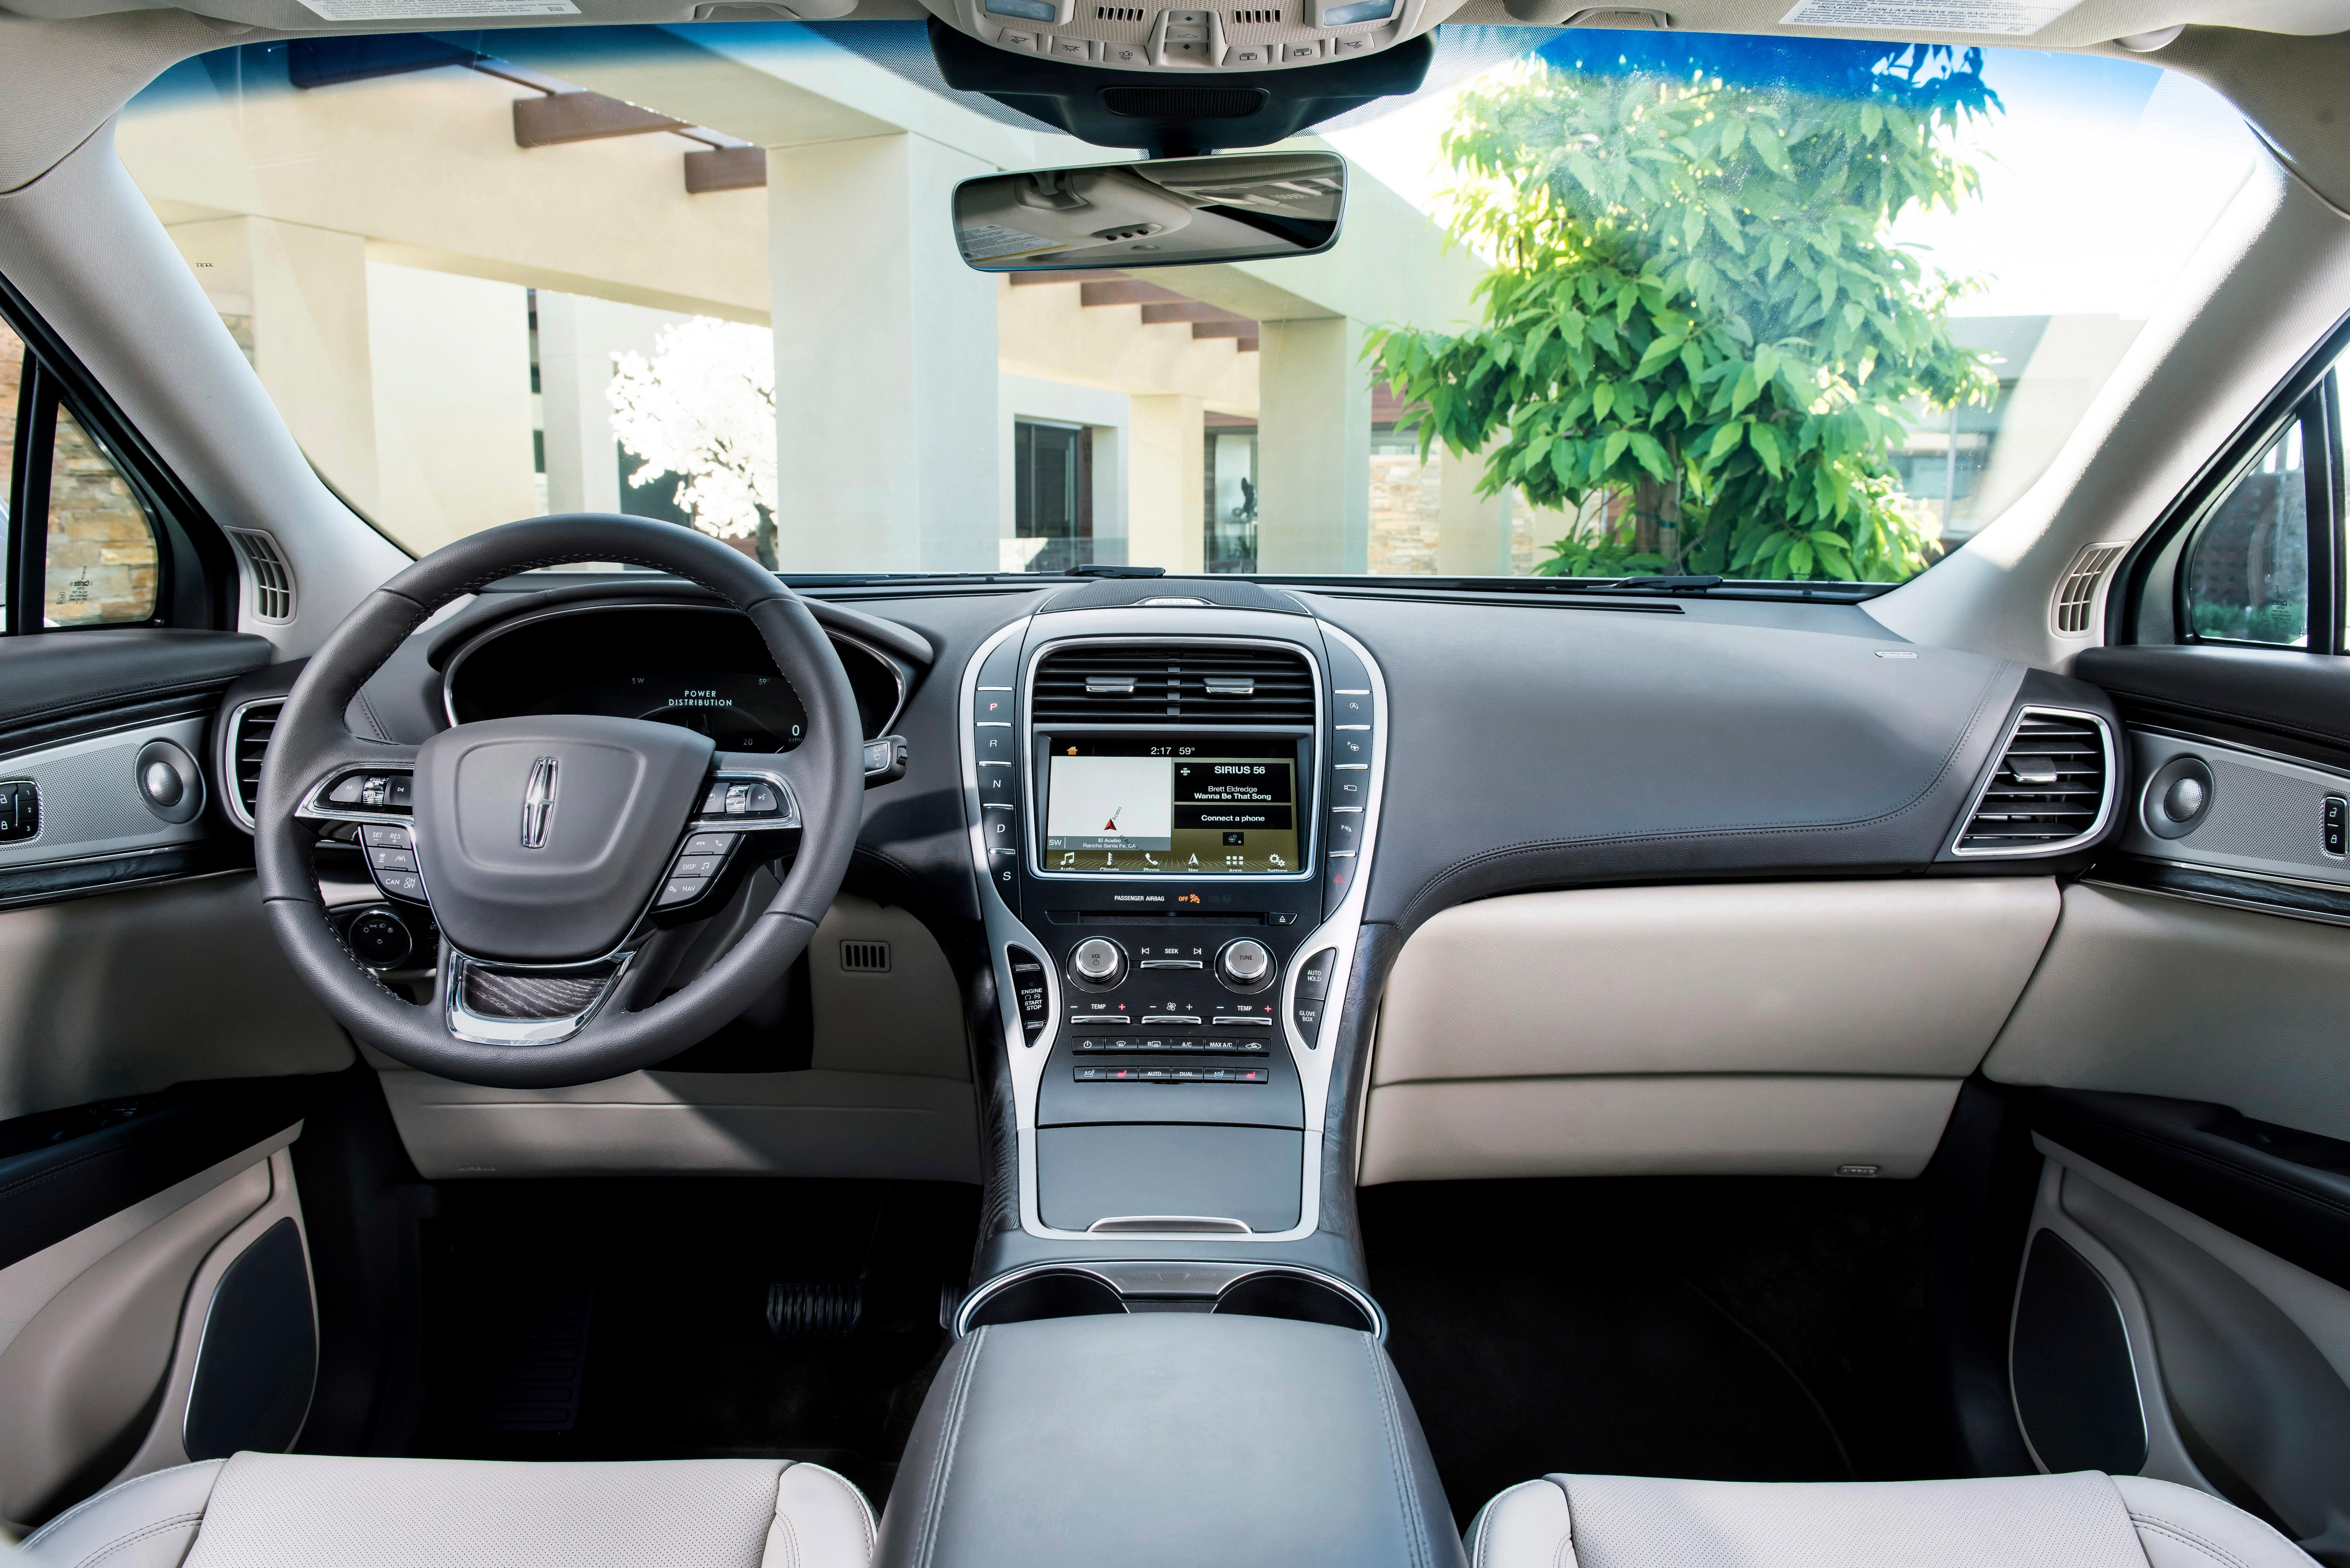 This photo provided by Ford Motor Co. shows the interior of the 2019 Lincoln Nautilus. The 2019 Nautilus swaps its V6 engine for two turbocharged four-cylinder choices. (James Lipman/Ford Motor Co. via AP)